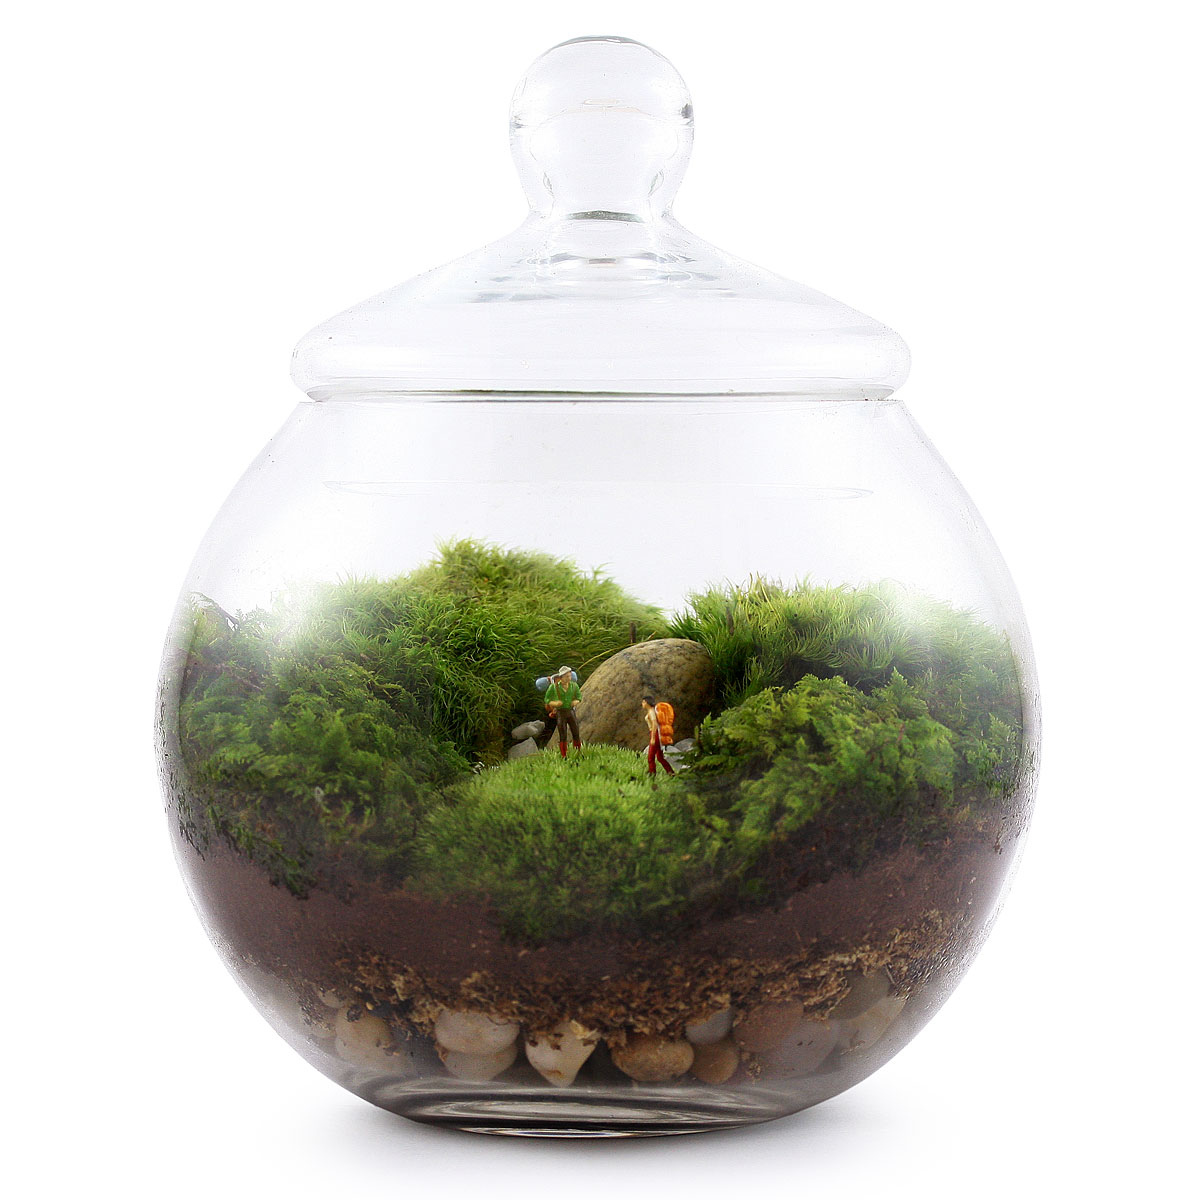 How To Grow Moss For A Terrarium Make